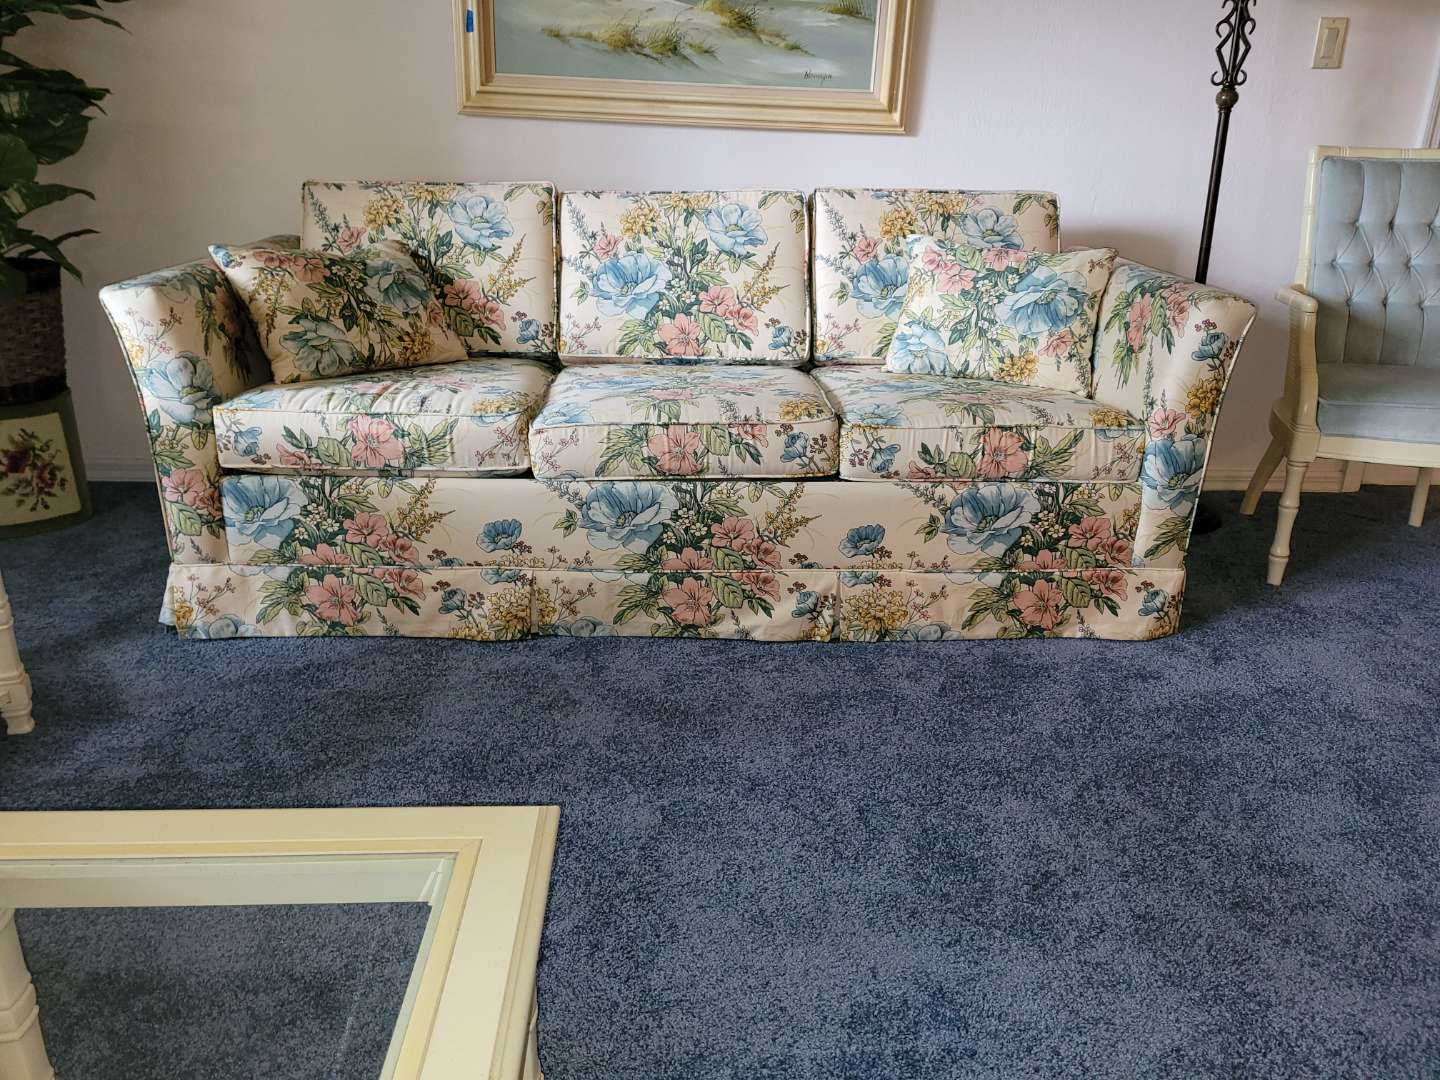 Lot # 272  Castro Convertibles Queen Size Sleeper Sofa - Like new